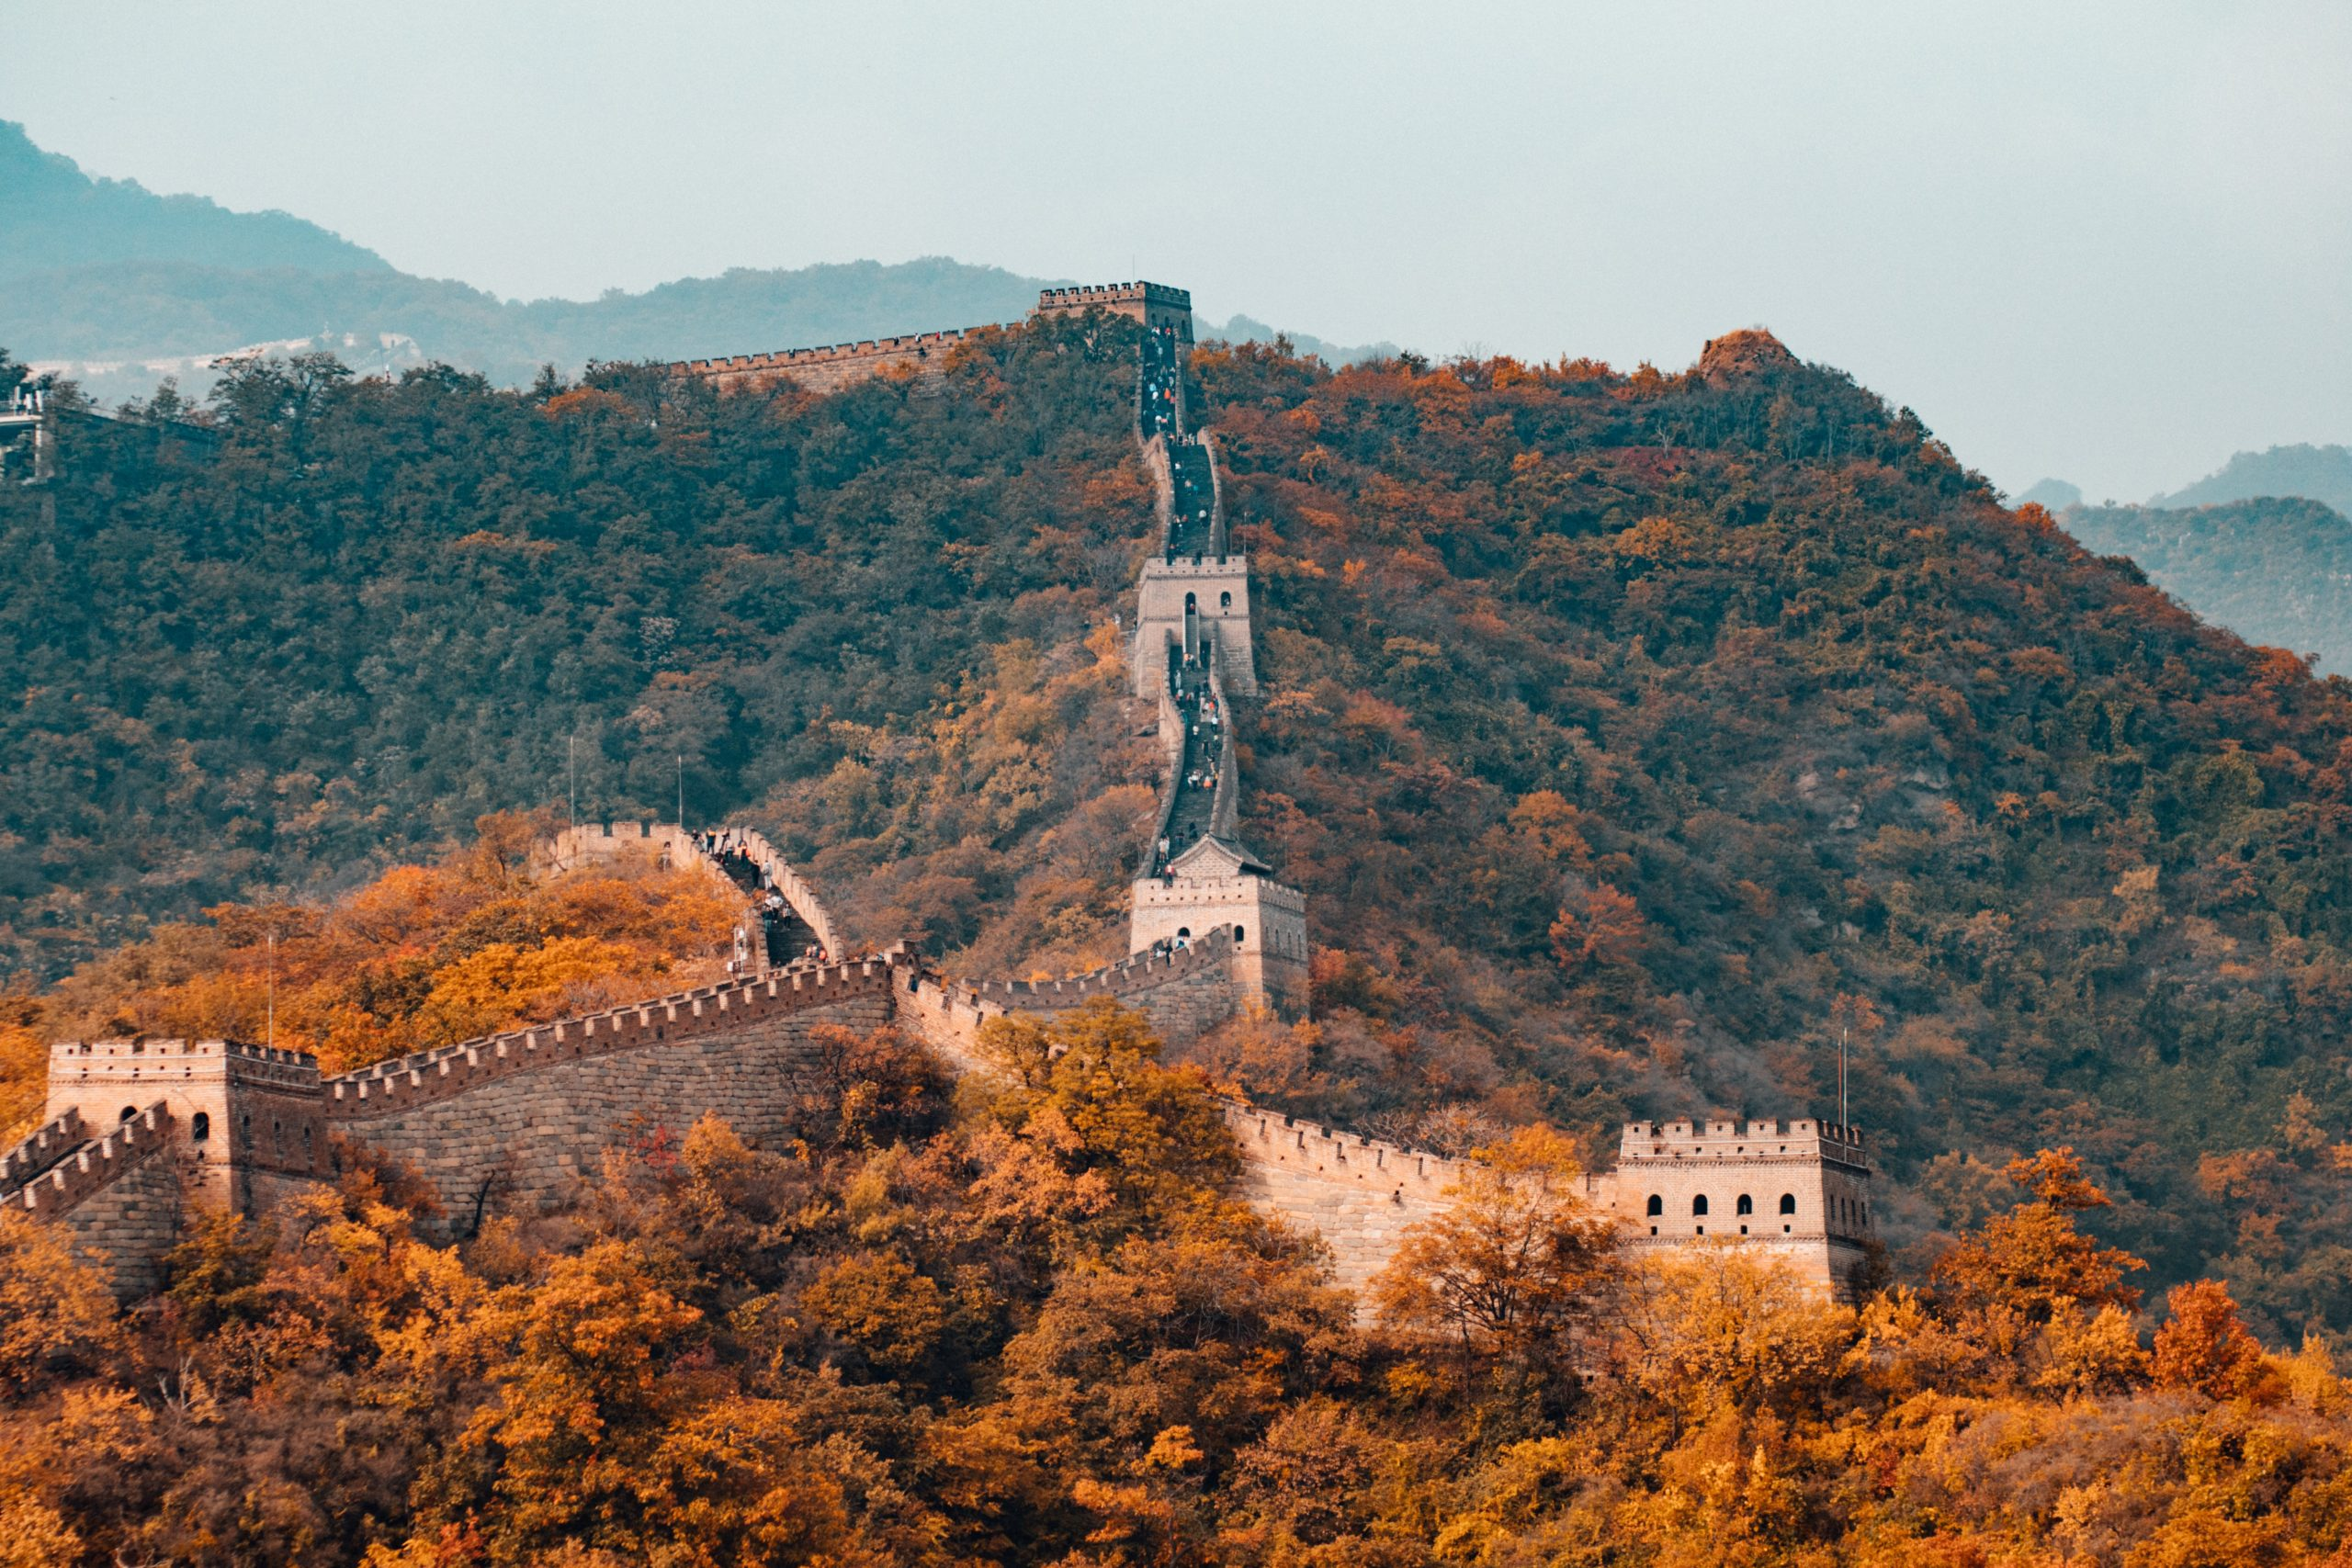 Great wall of China image by Hanson Lu